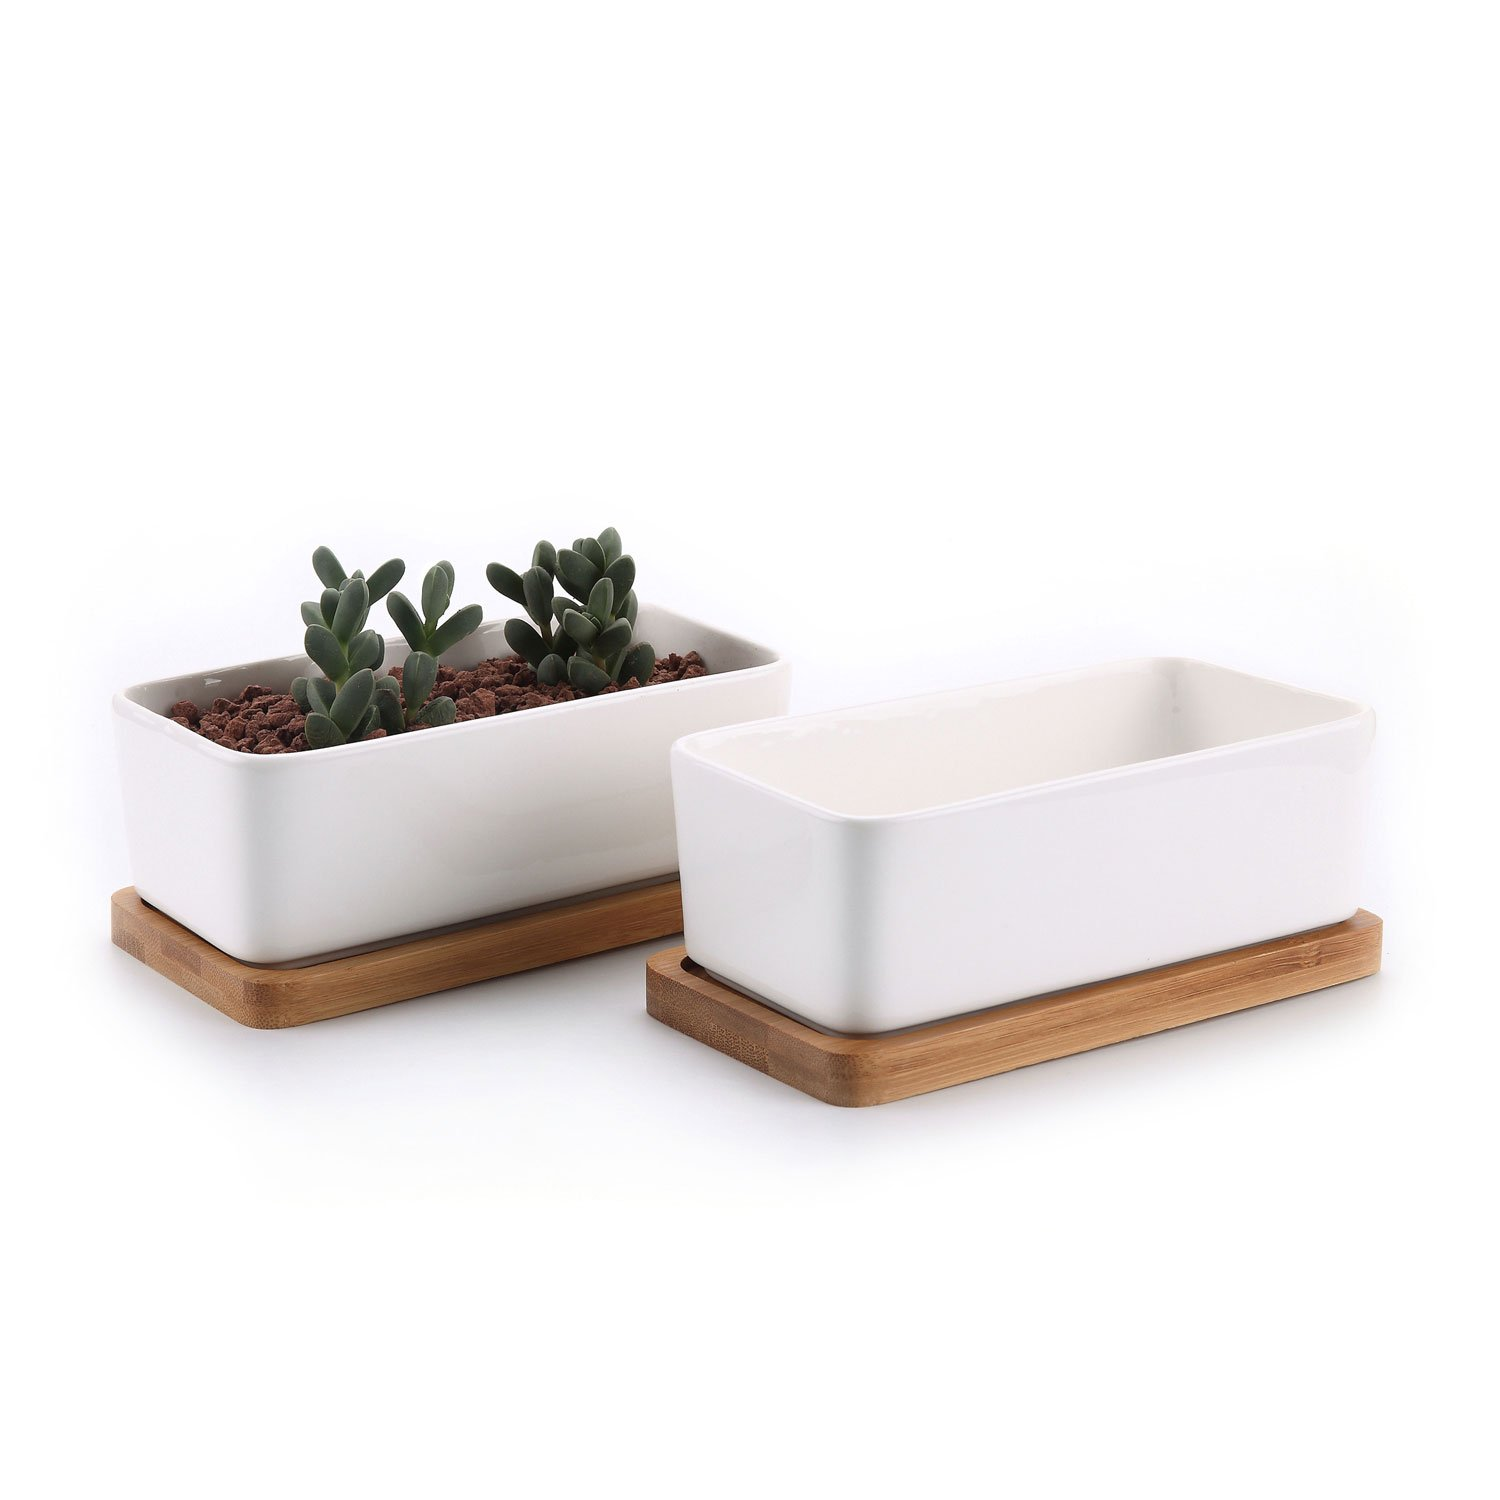 T4U 6.5 Inch Ceramic White Rectangle Sucuulent Plant Pot Cactus Plant Pot with Free Bamboo Tray Package 1 Pack of 2